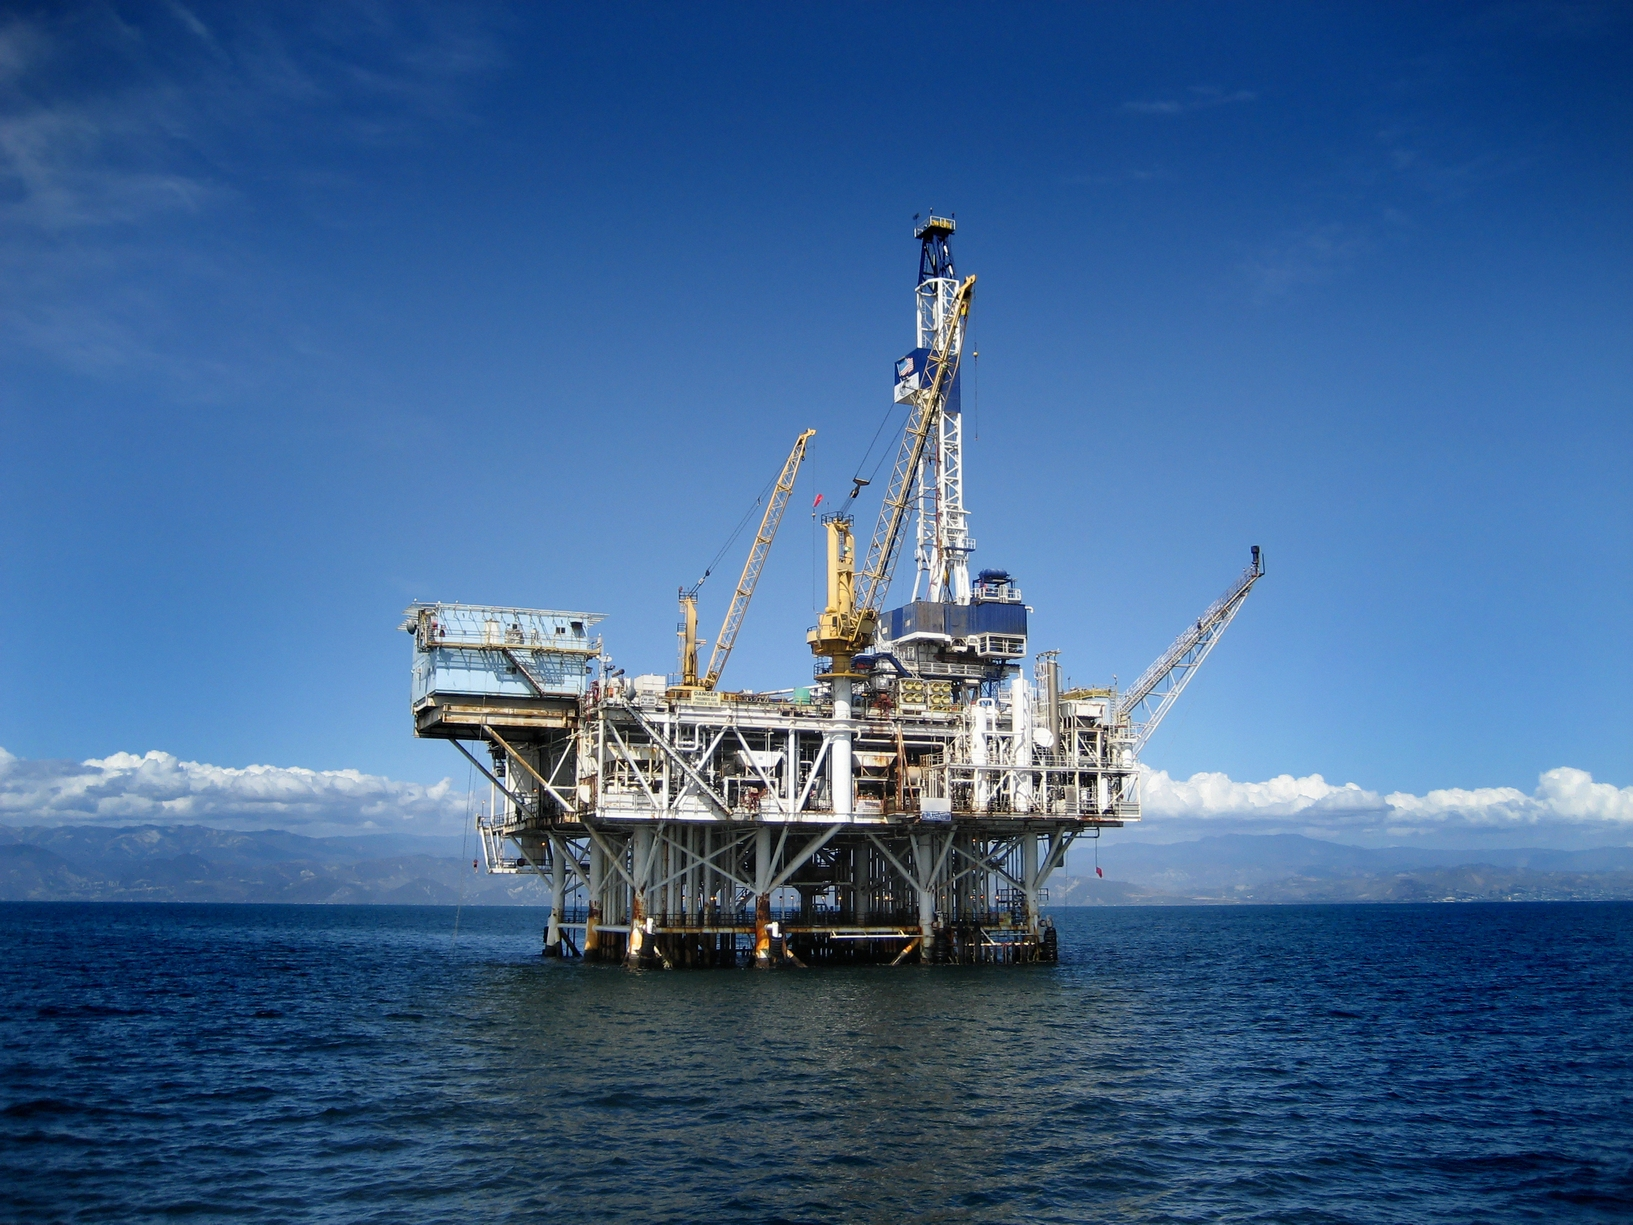 Large Pacific Ocean oil rig drilling platform off the southern coast of California. Circa 2007.